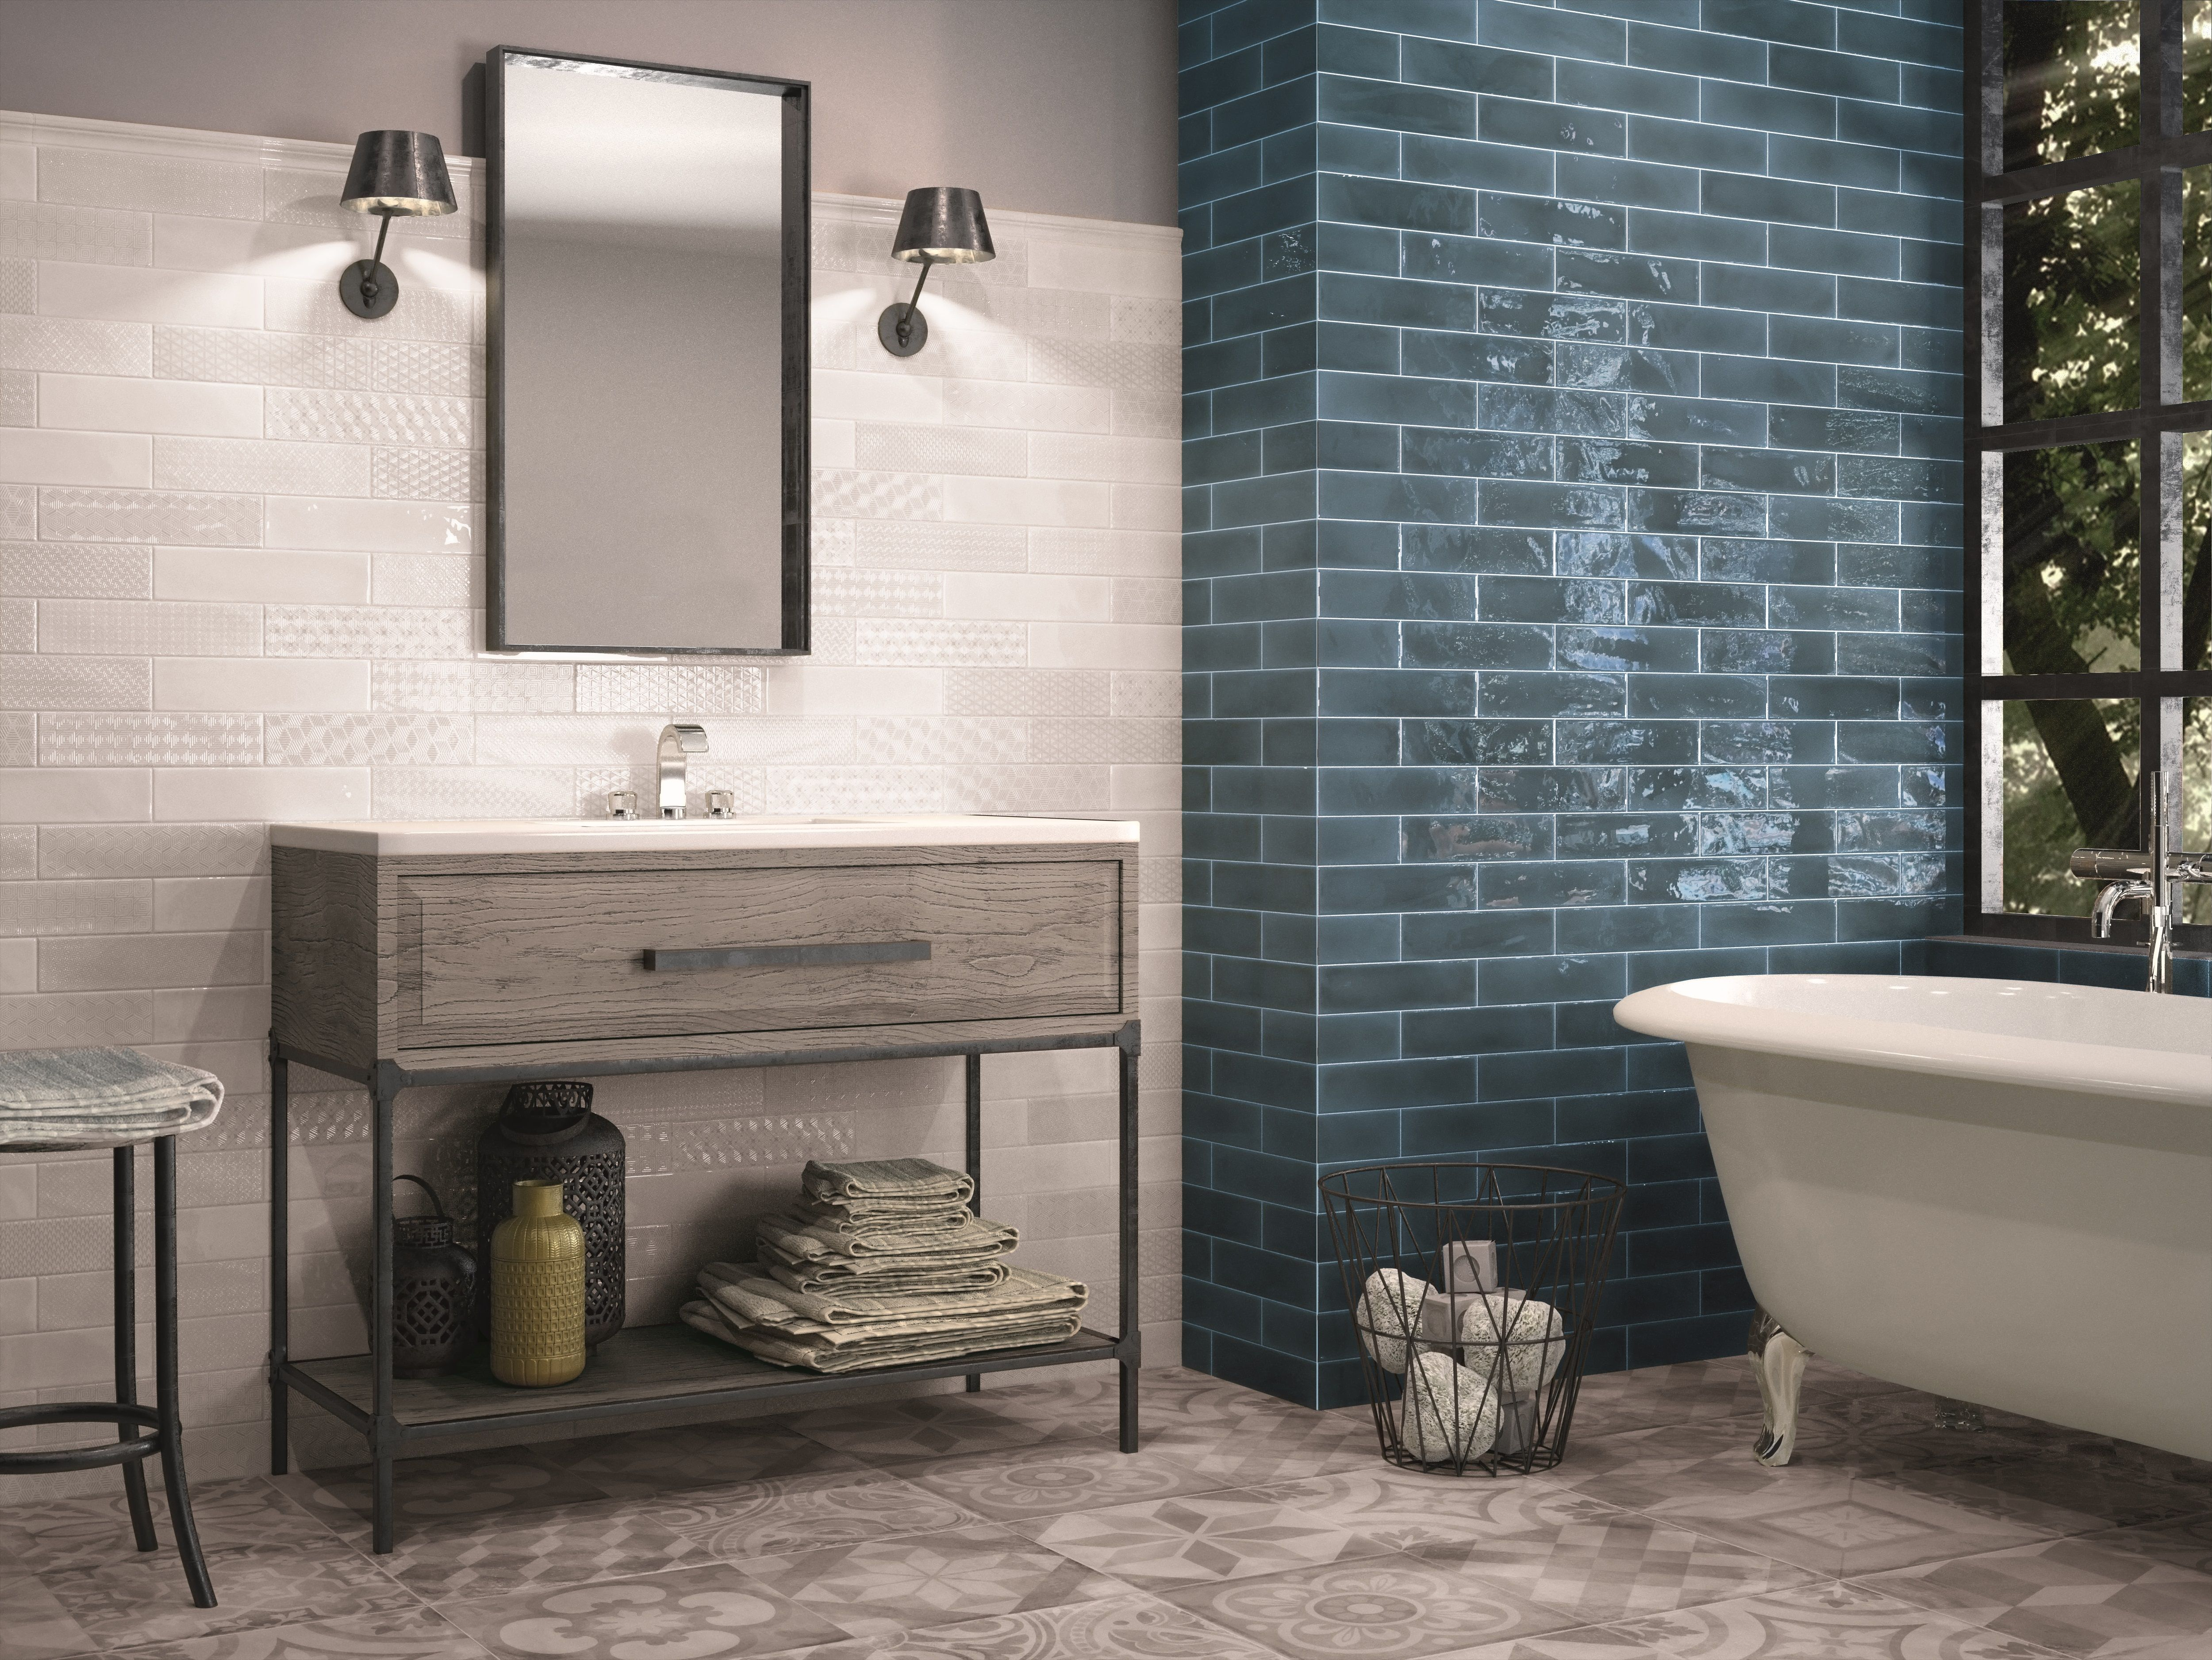 Marine blue metro tiles with white detail tiles and patterned floor ...